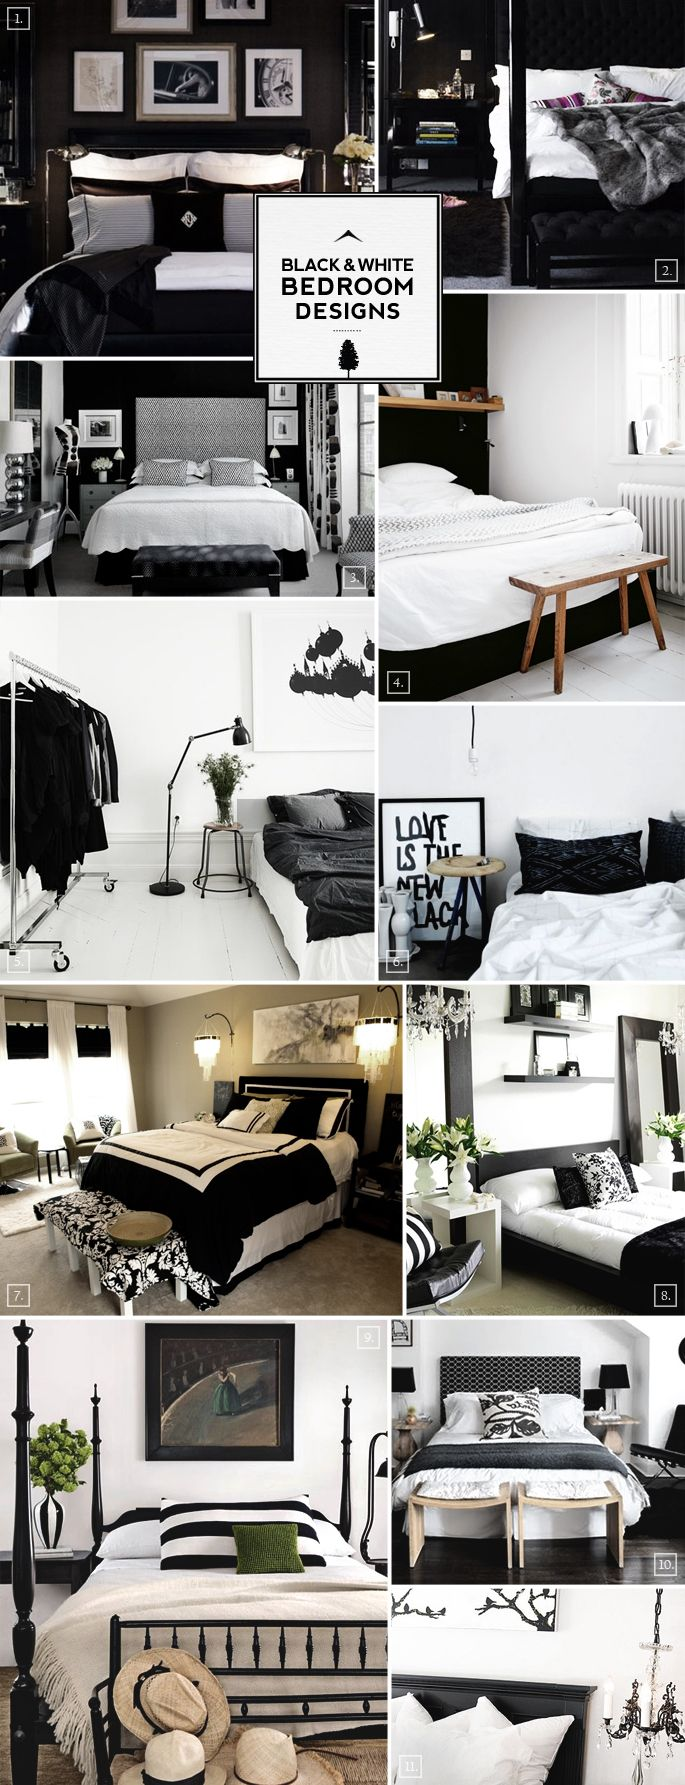 Bedroom Ideas Black And White best 25+ black bedroom design ideas on pinterest | monochrome